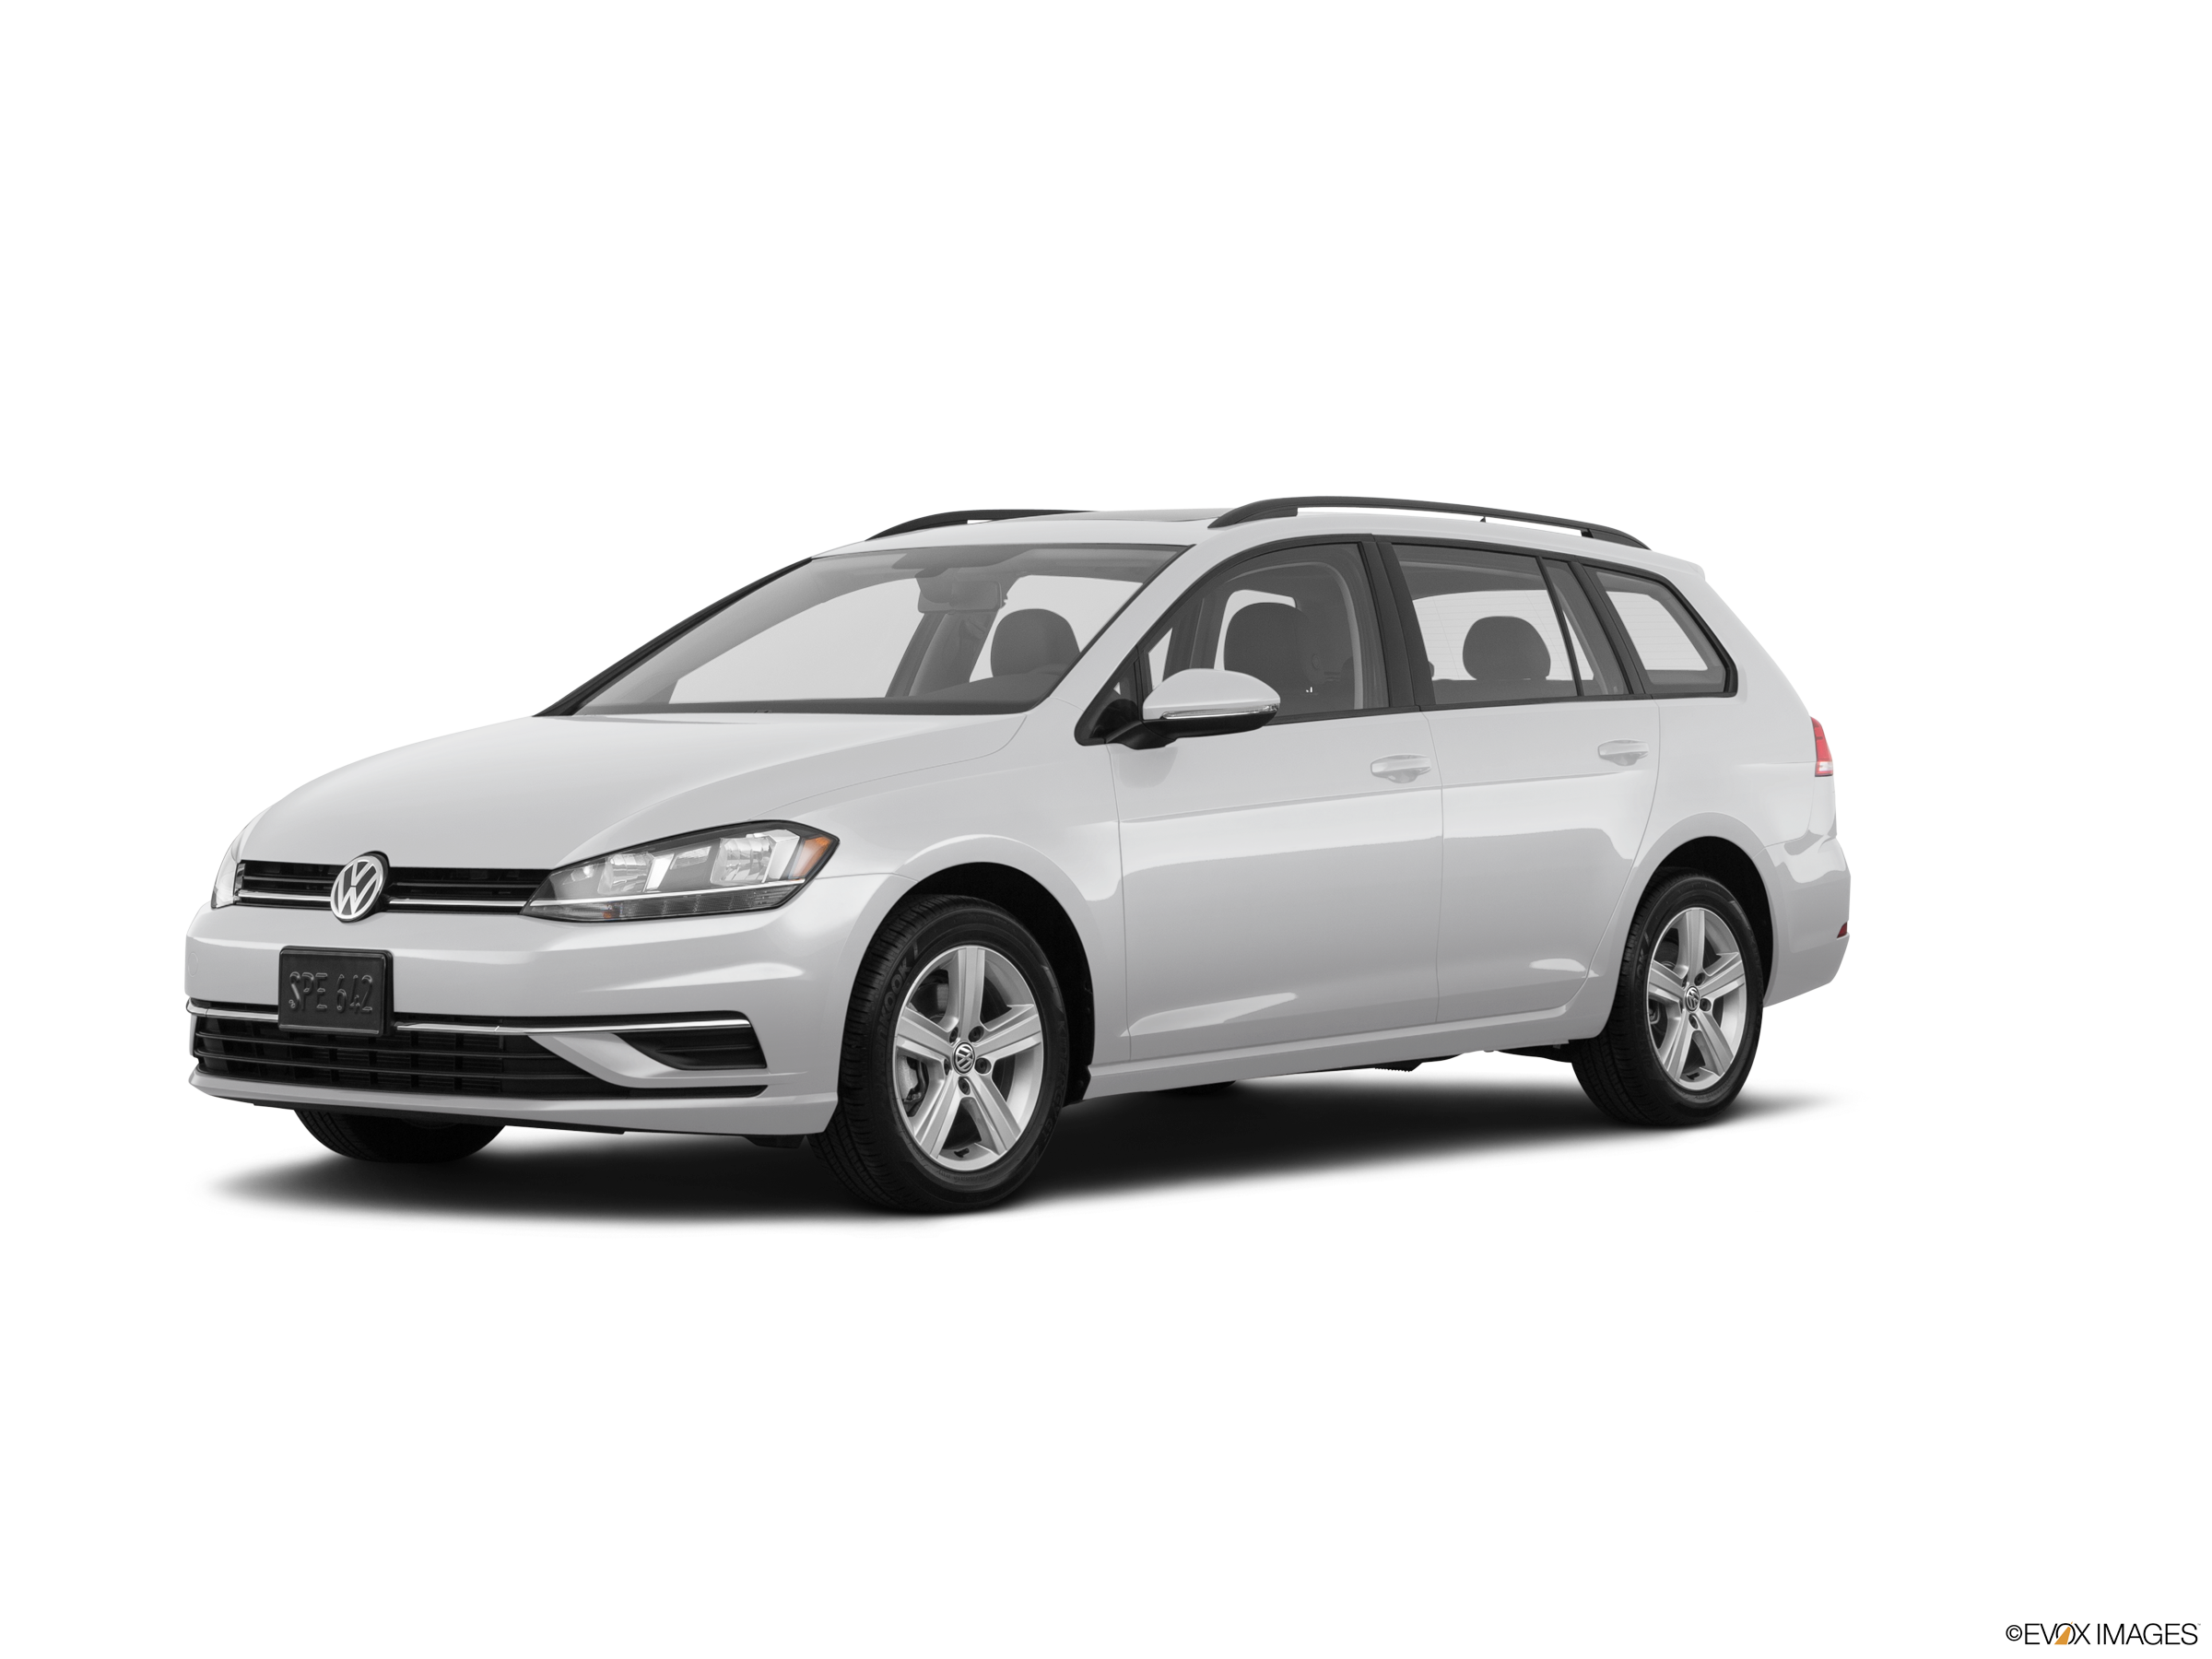 Most Popular Wagons of 2018 - 2018 Volkswagen Golf SportWagen